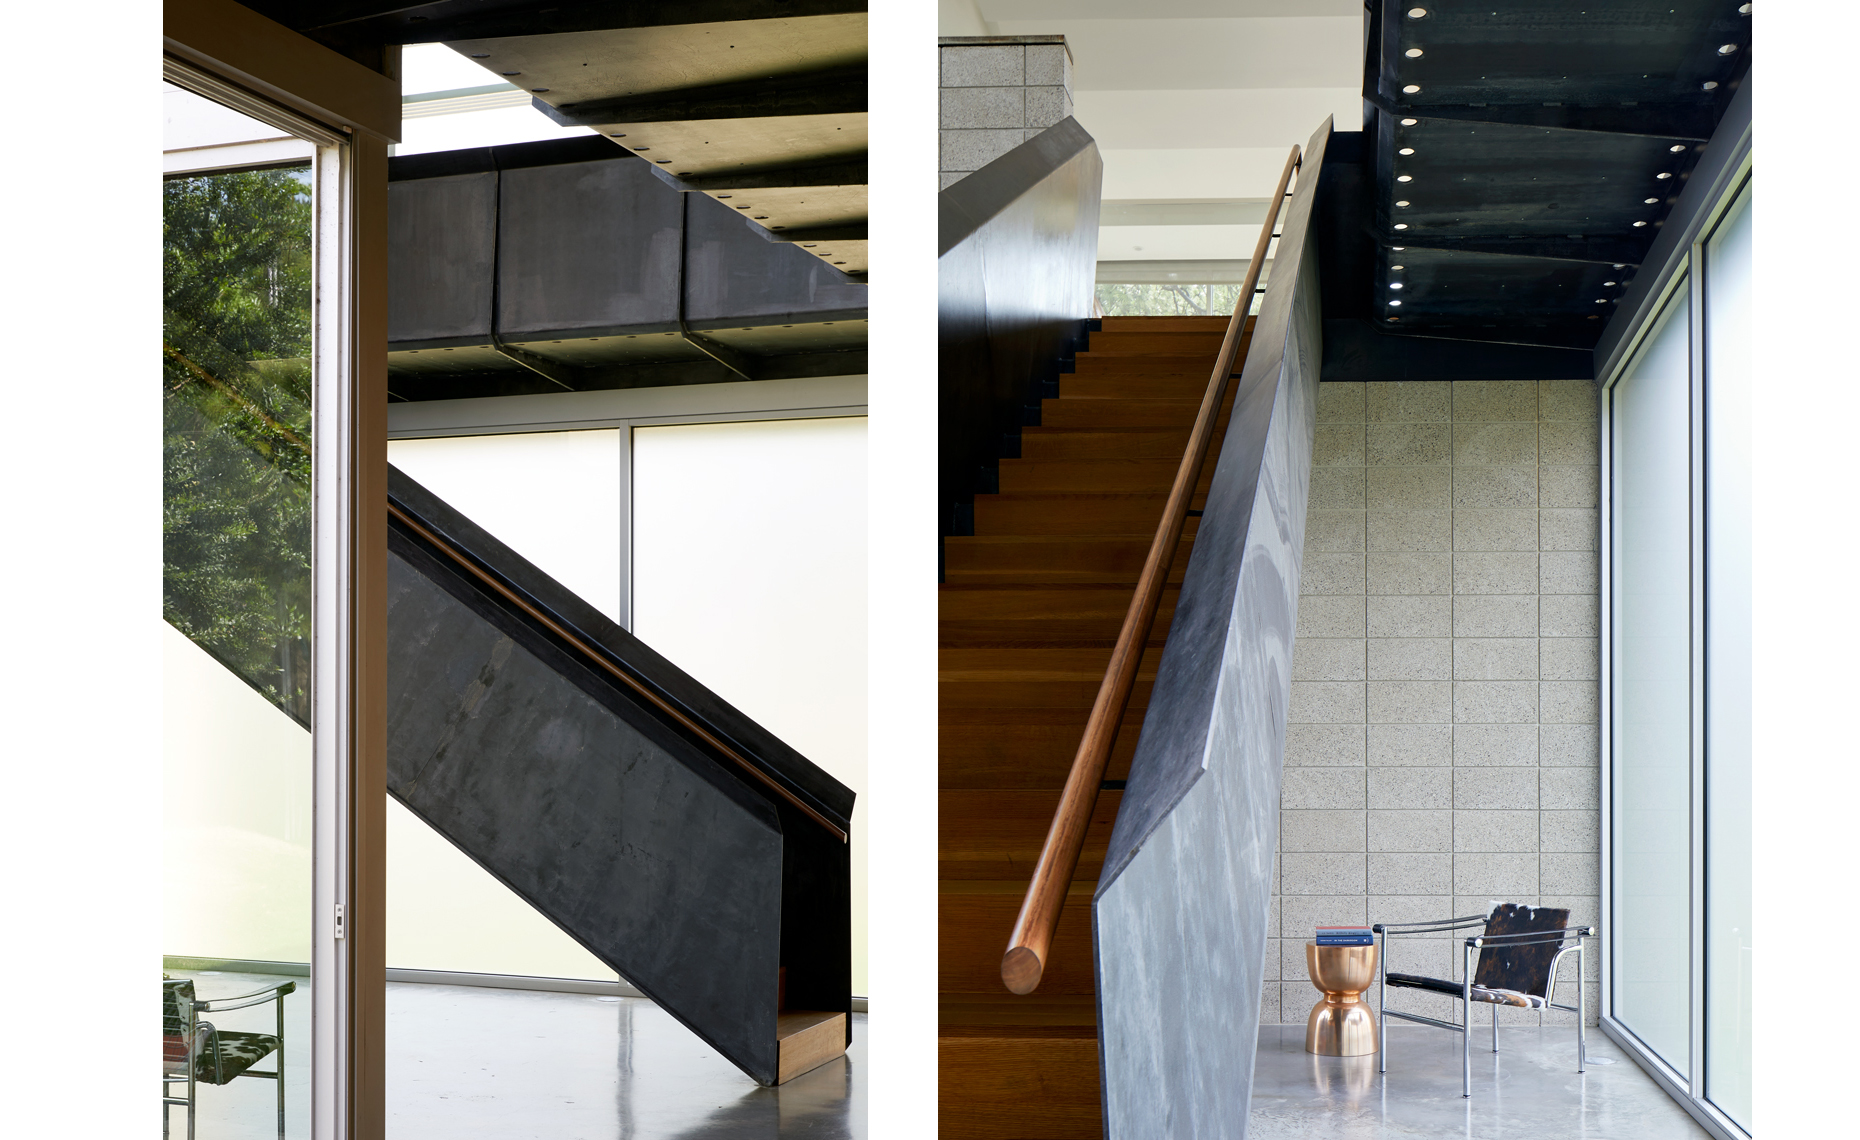 dror baldinger FAIA architectural photography steel stairs modernist minimalist interiors